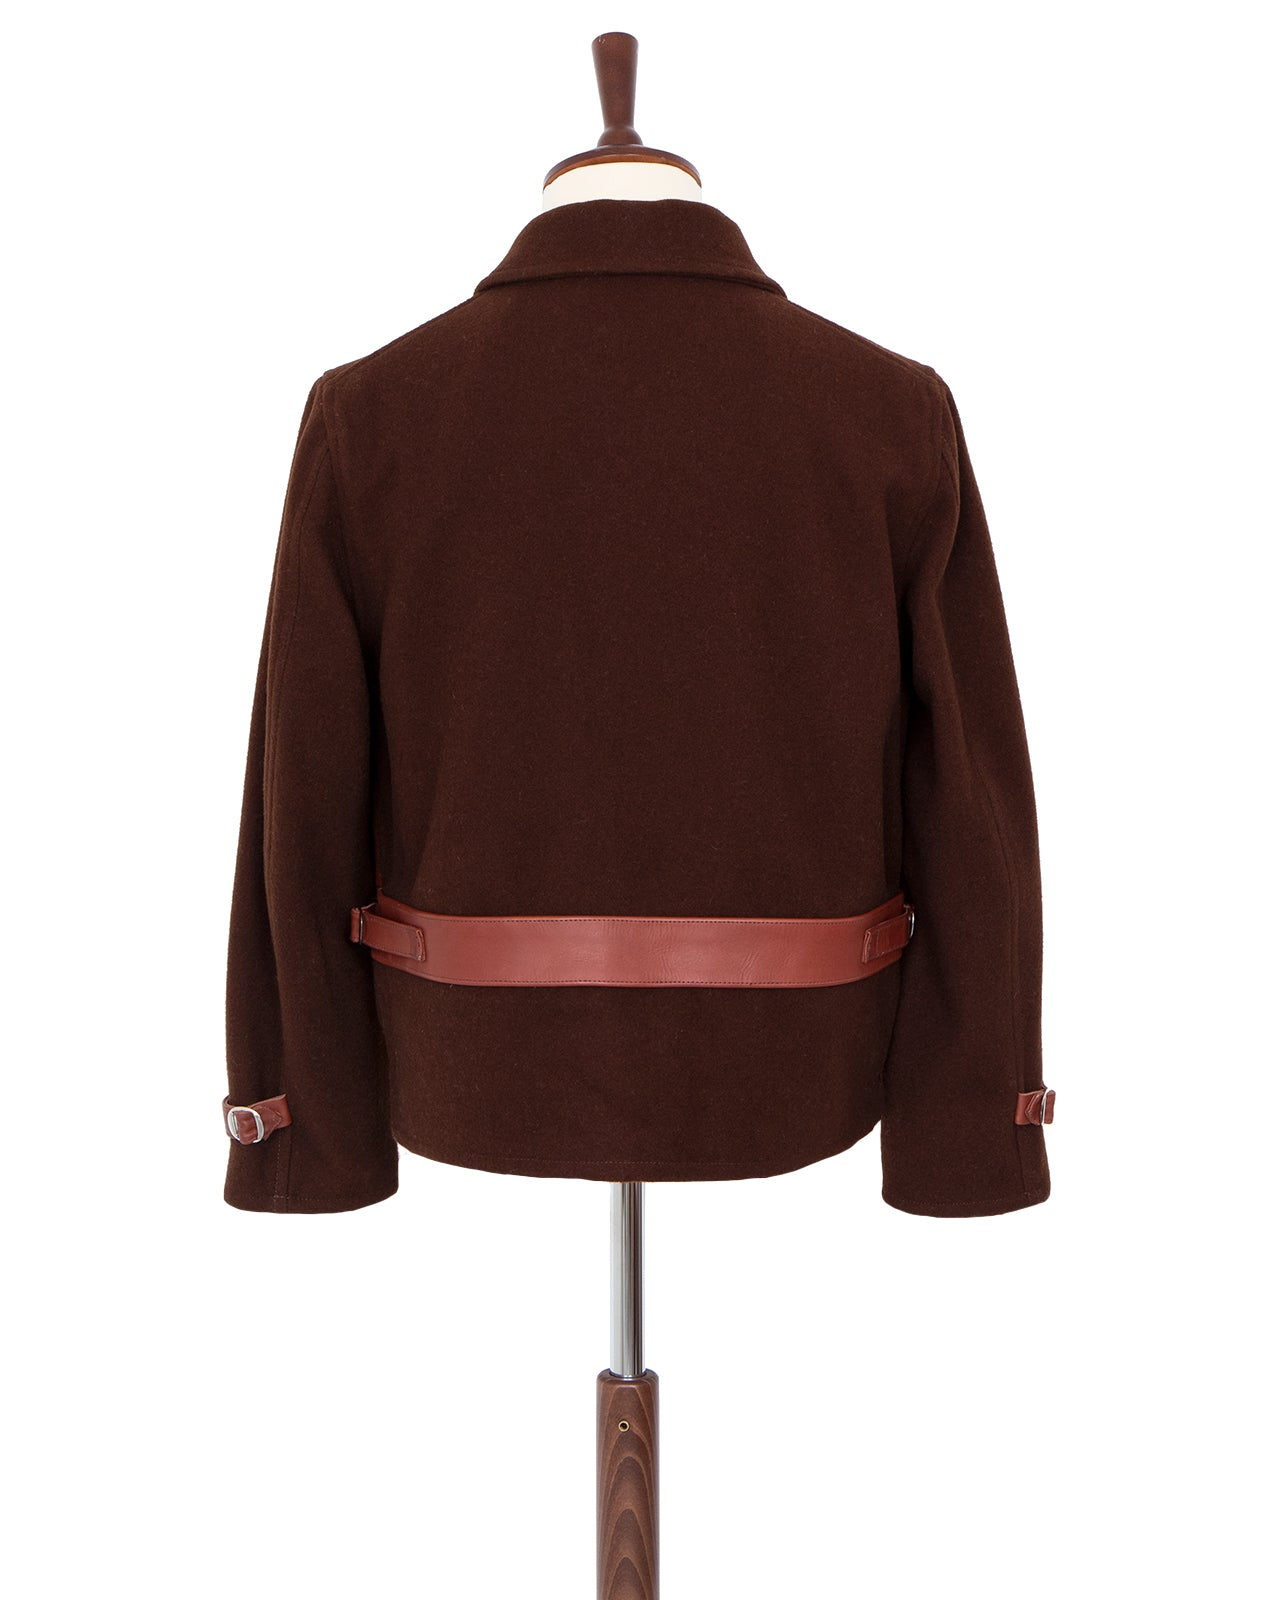 By Glad Hand, 30s Sport Jacket, Brown